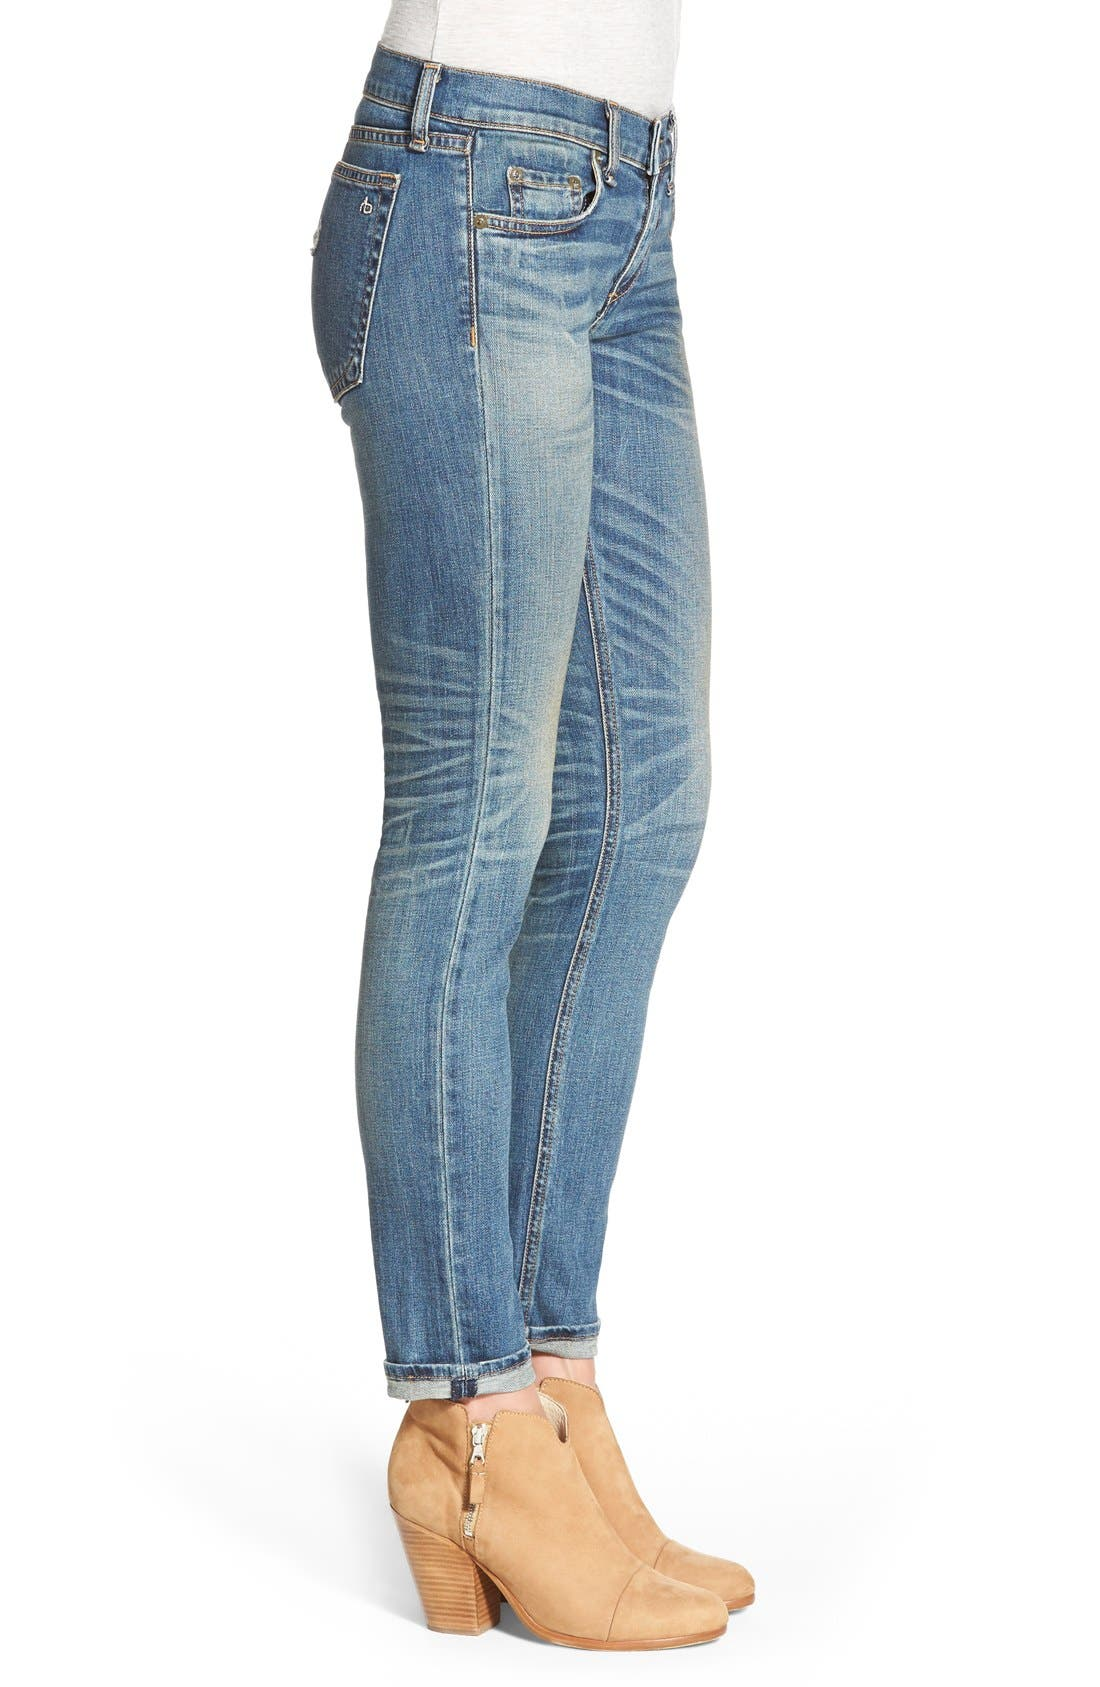 Alternate Image 3  - rag & bone/JEAN 'The Dre' Slim Fit Boyfriend Jeans (Ada)